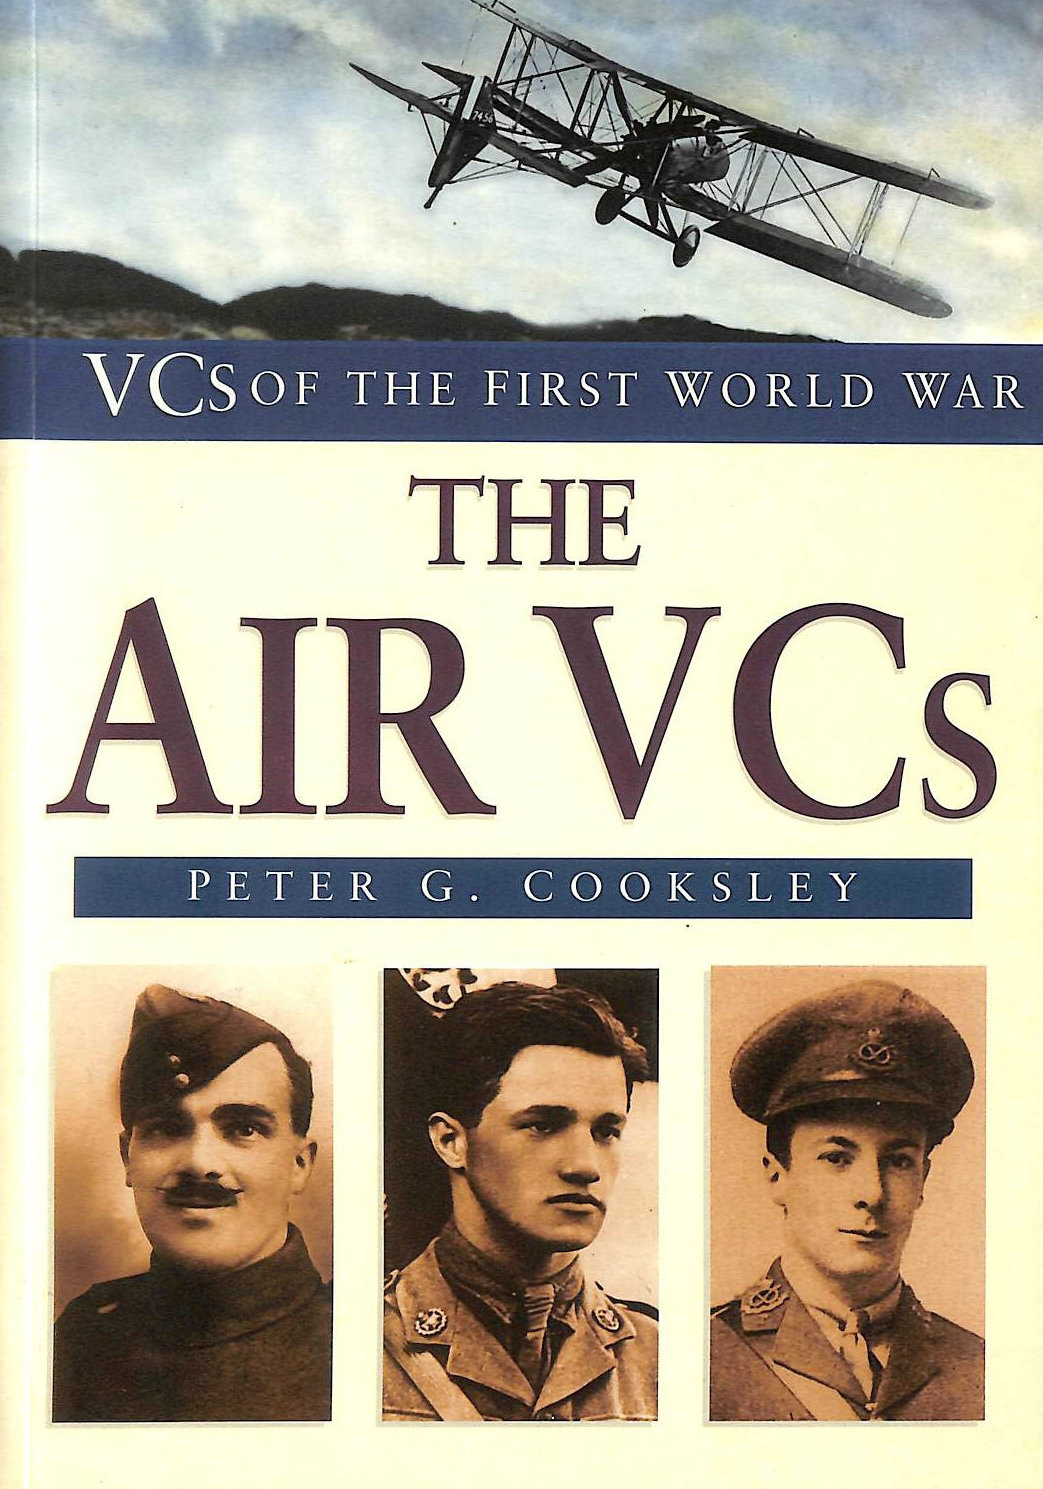 COOKSLEY, PETER G. - The Air VCs (VCs of the First World War)